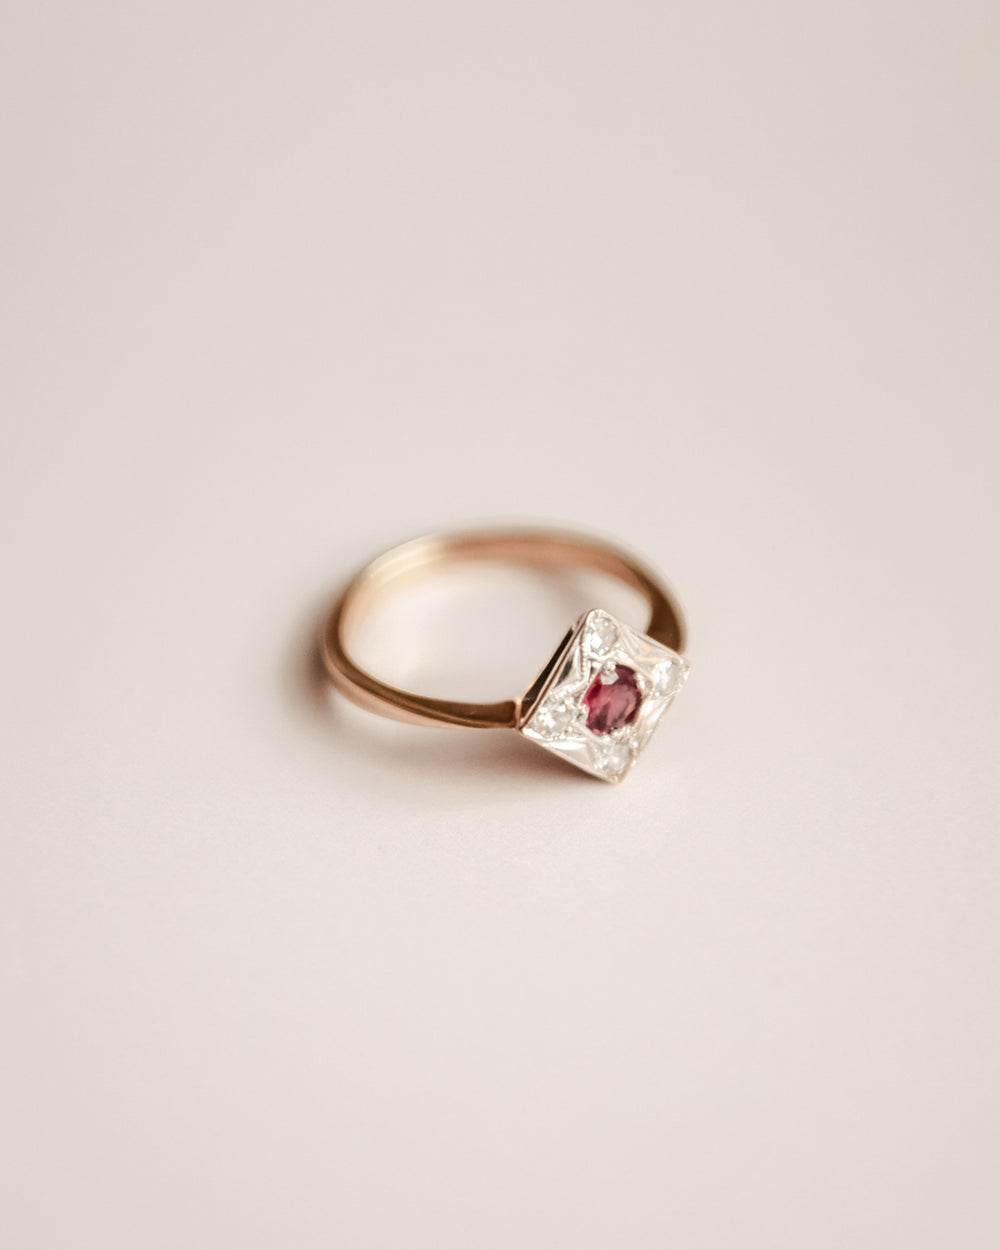 Temperance Exclusive Vintage 9ct Gold Ruby and Diamond Ring